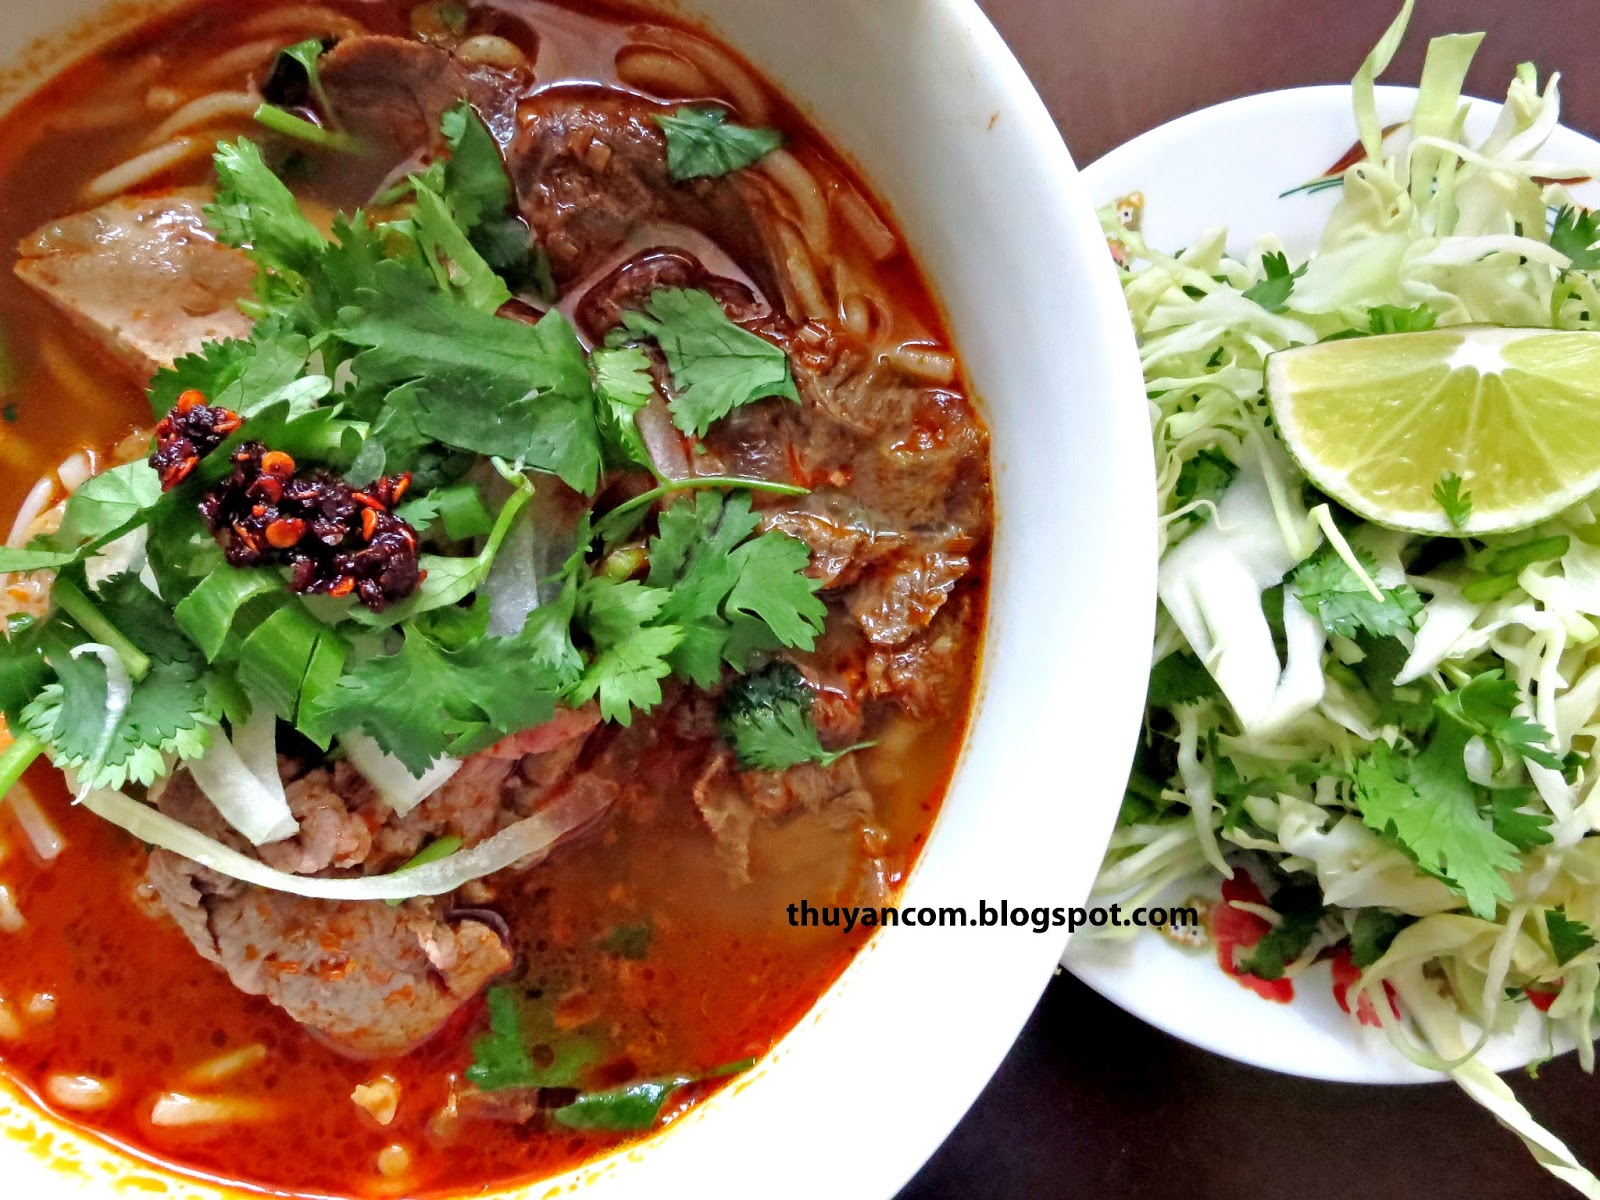 Blog of Salt: Bun Bo Hue Pt. 2